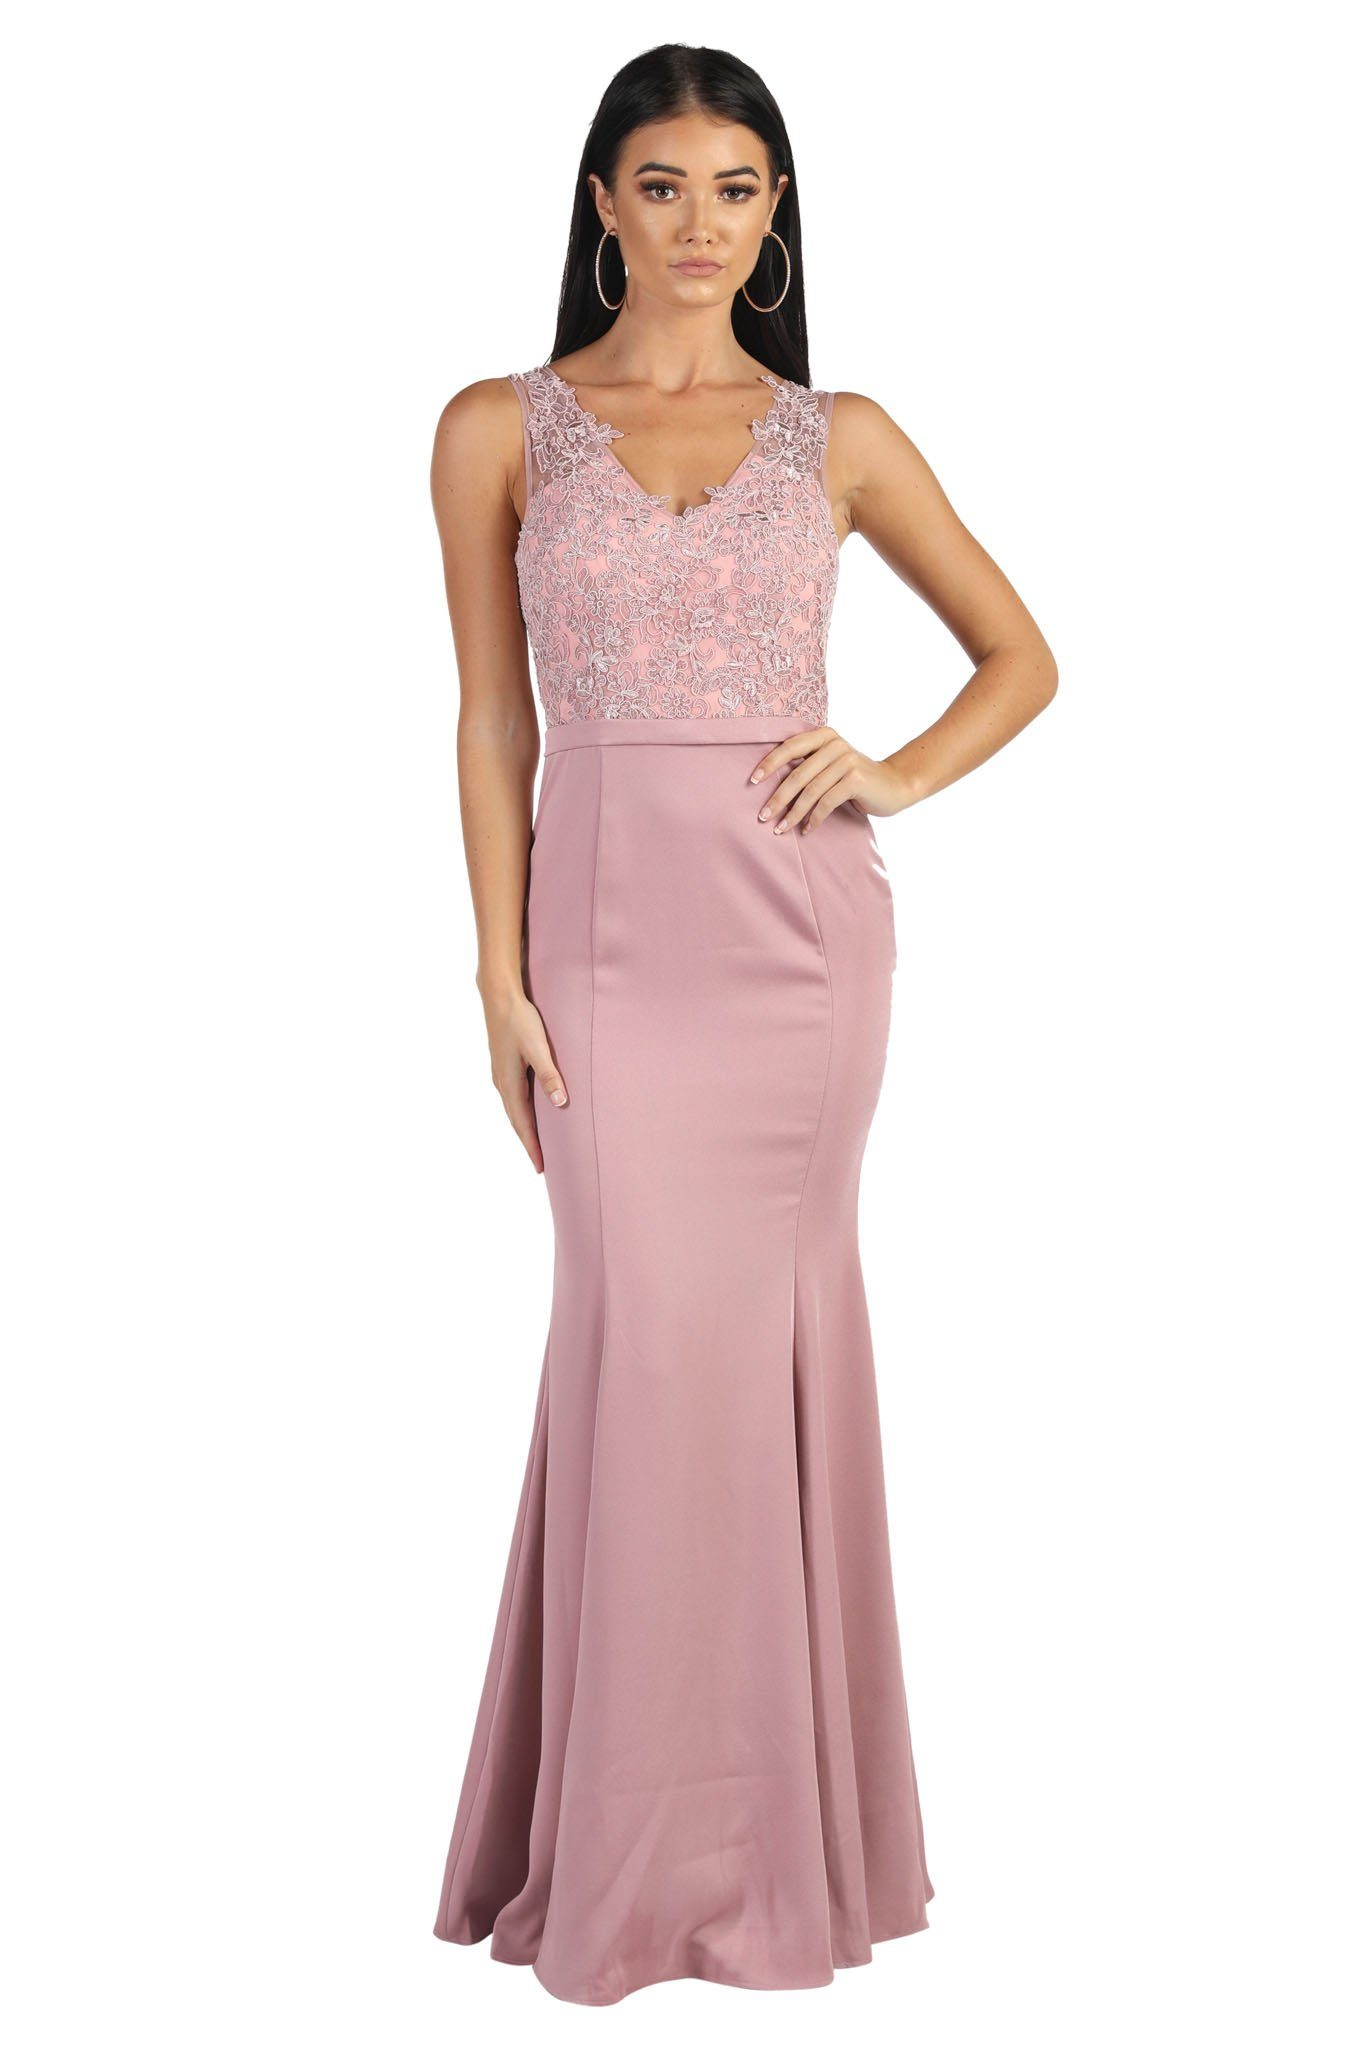 Form Fitting Maxi-Length Bridesmaid or Formal Evening Dress with Lace Bodice, V Neckline, Fit and Flare Skirt in Dusty Pink Colour